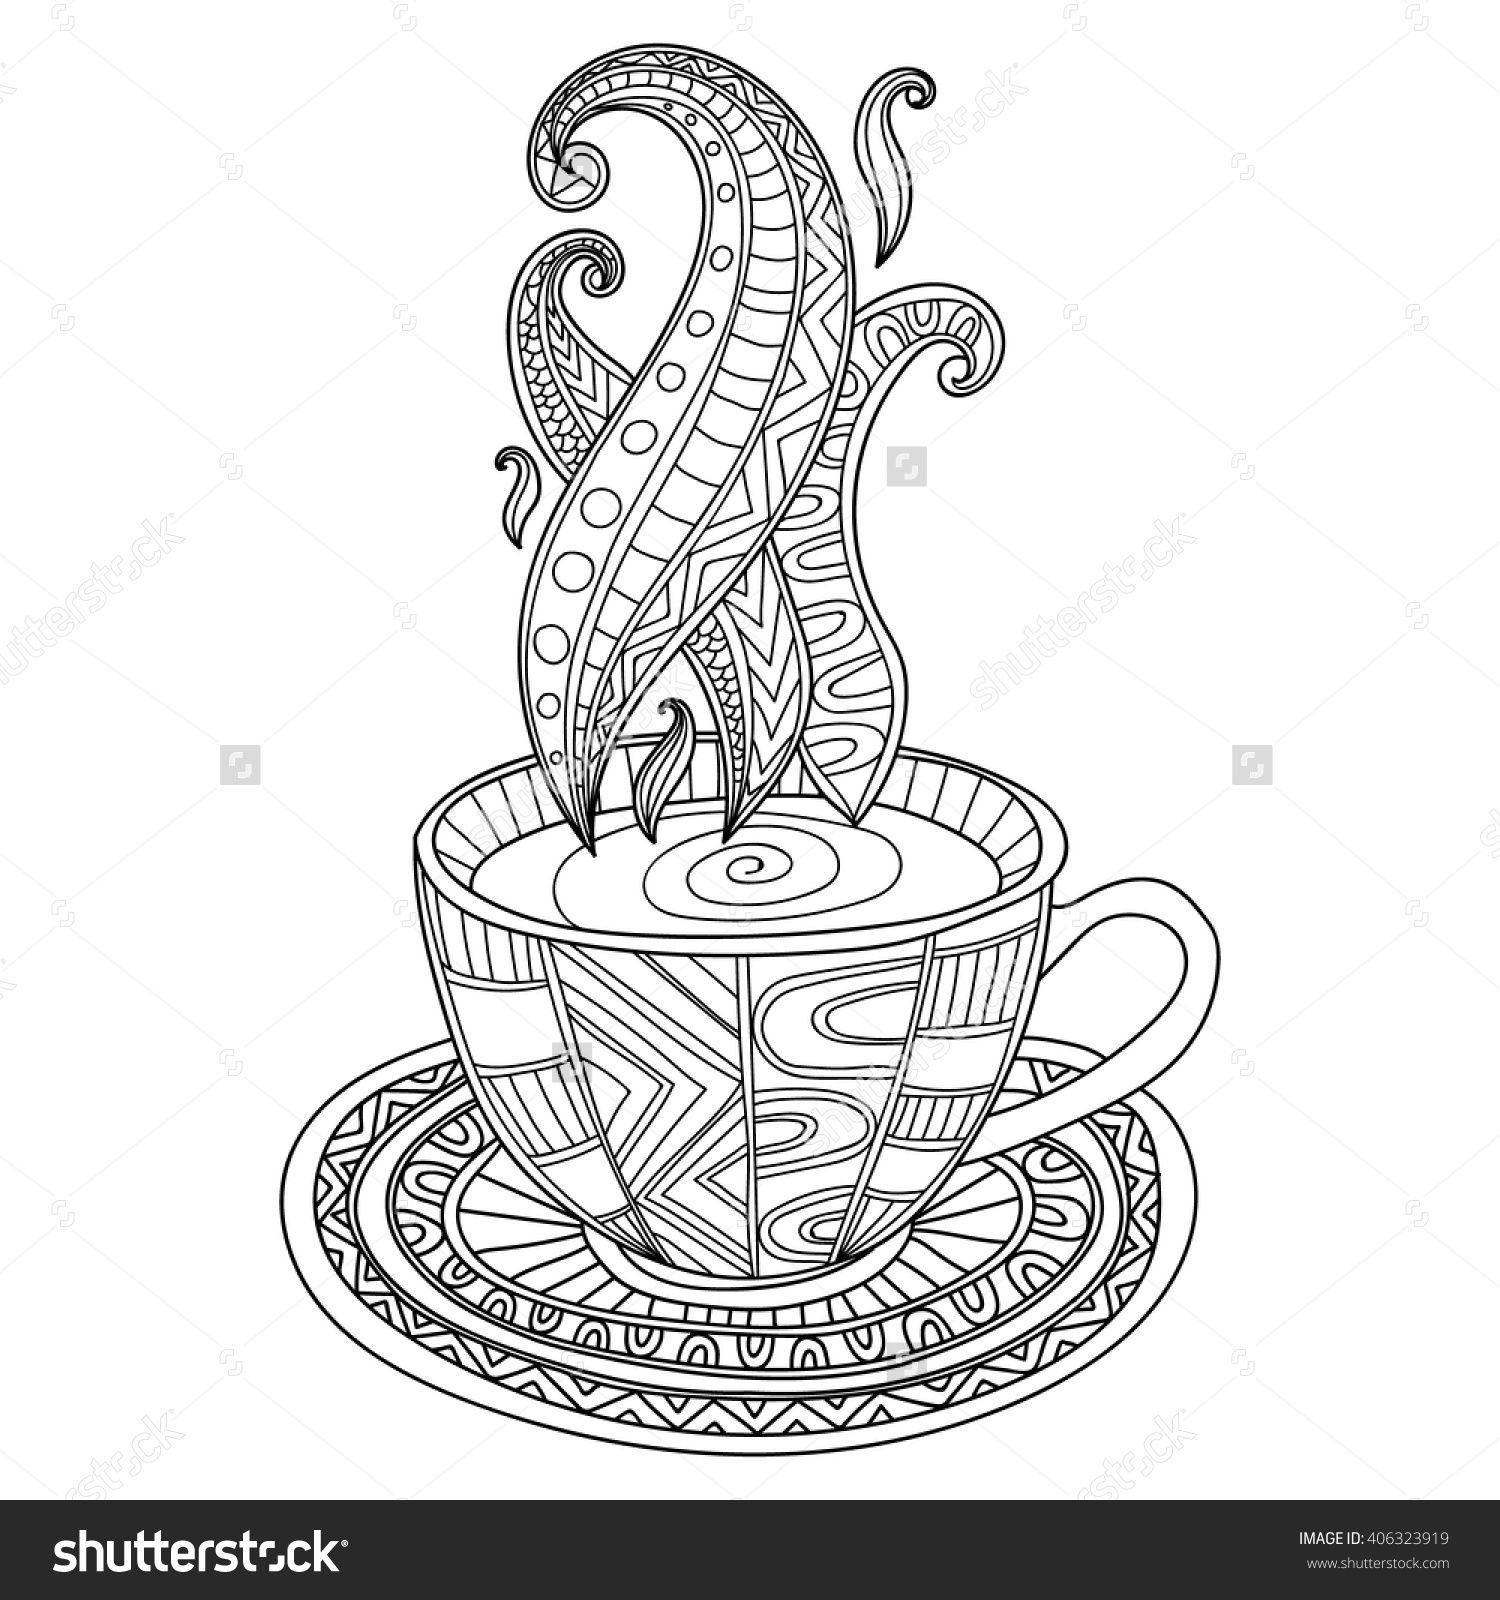 Cup of Coffee or Tea Zentangle